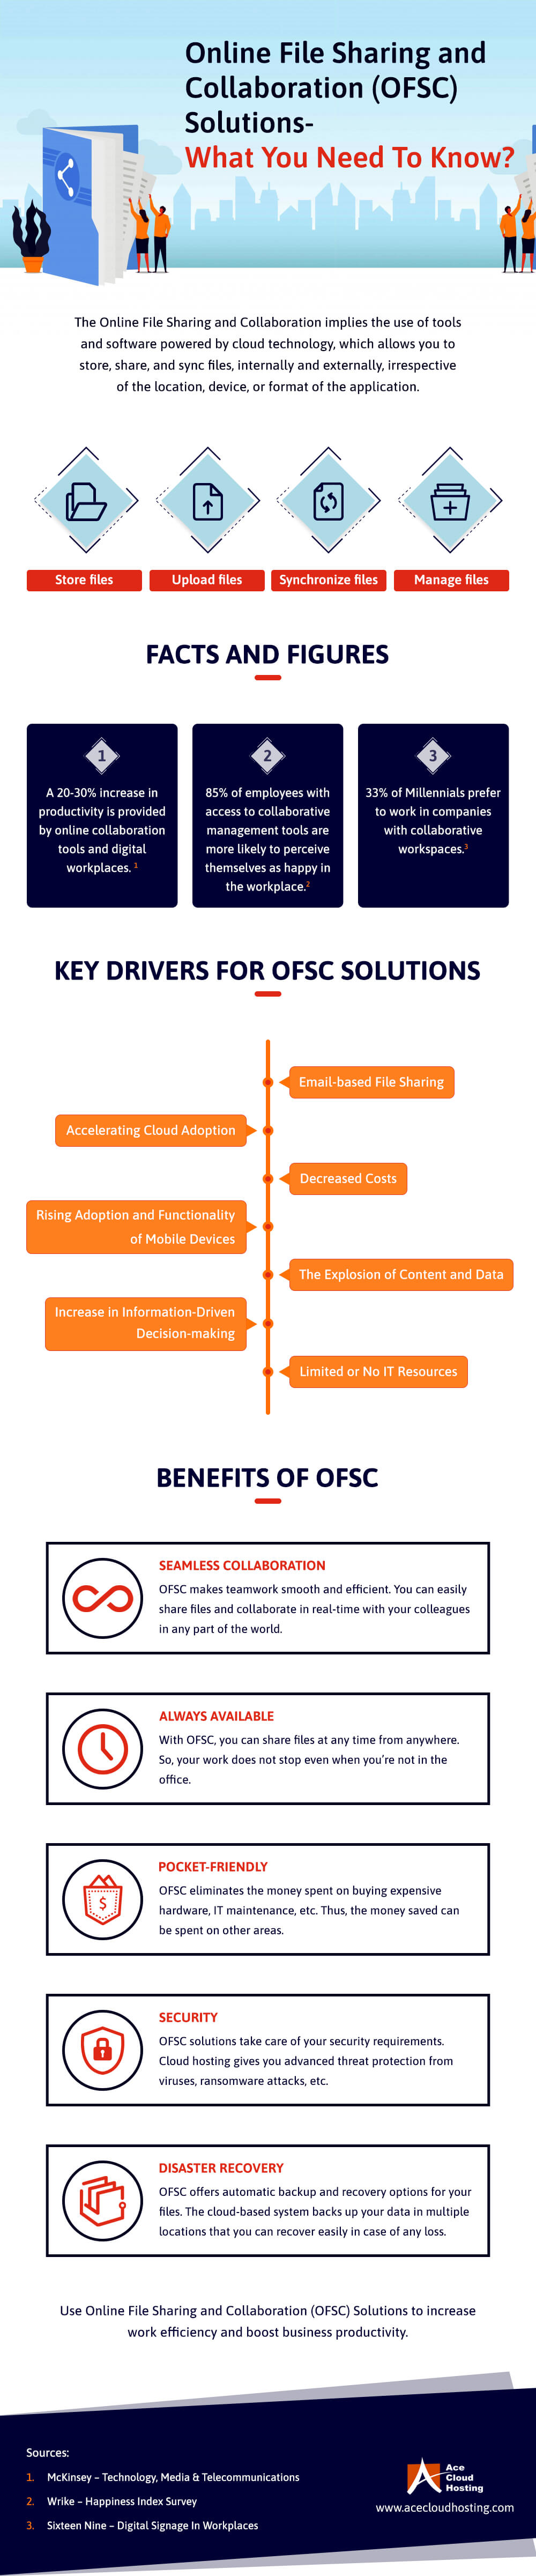 OFSC Solutions - What You Need To Know? Infographic